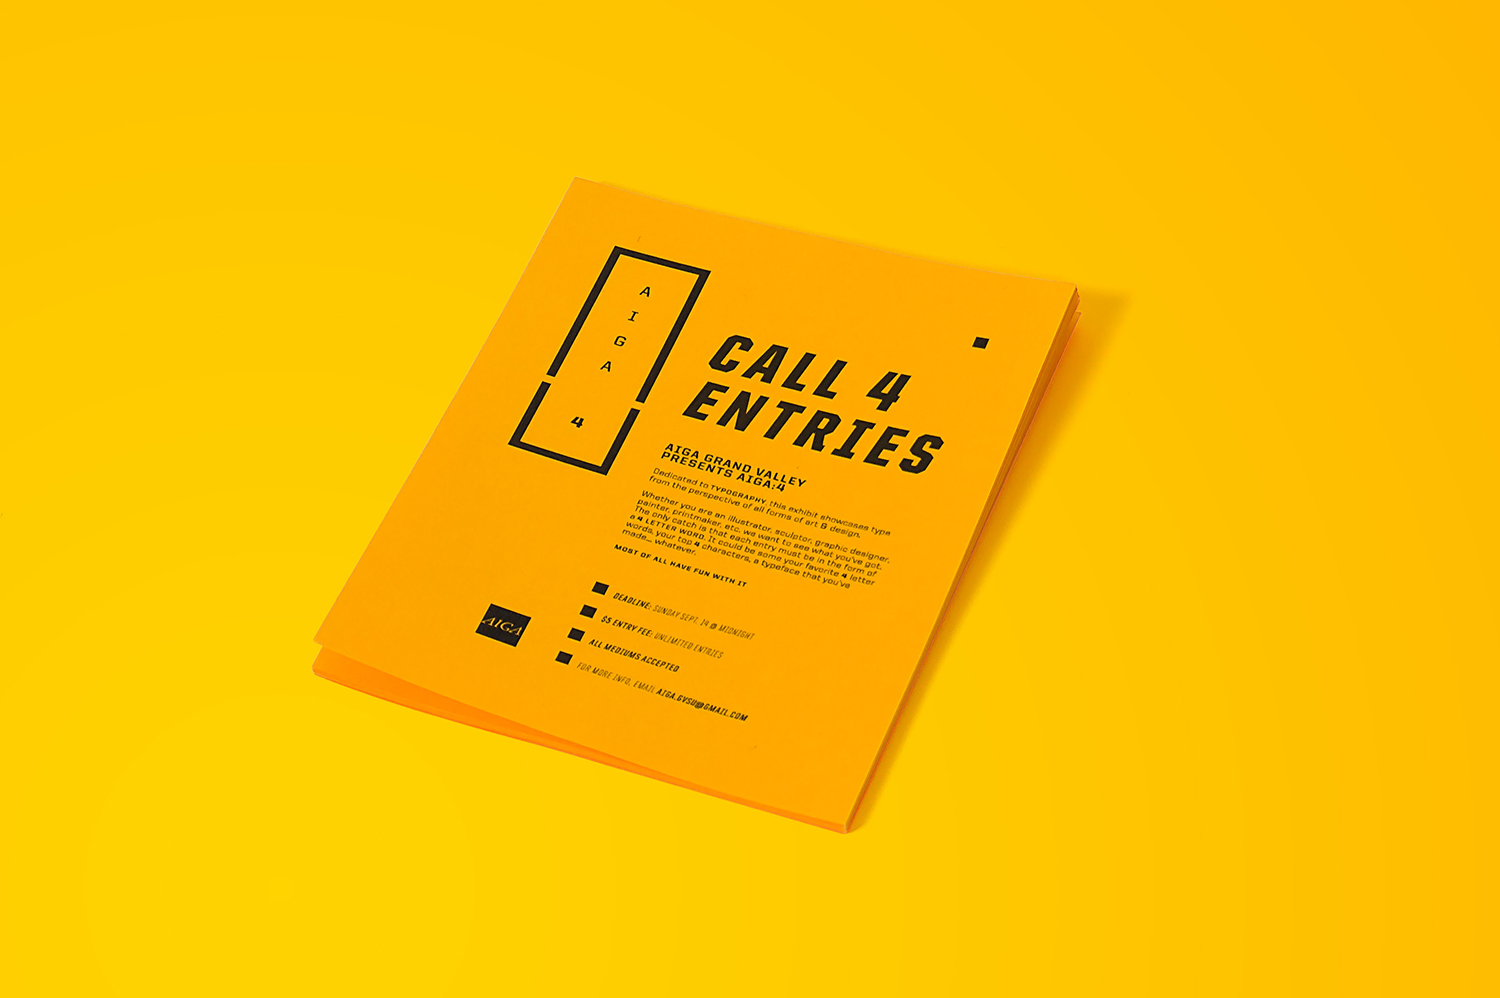 Call for Entries Flyer